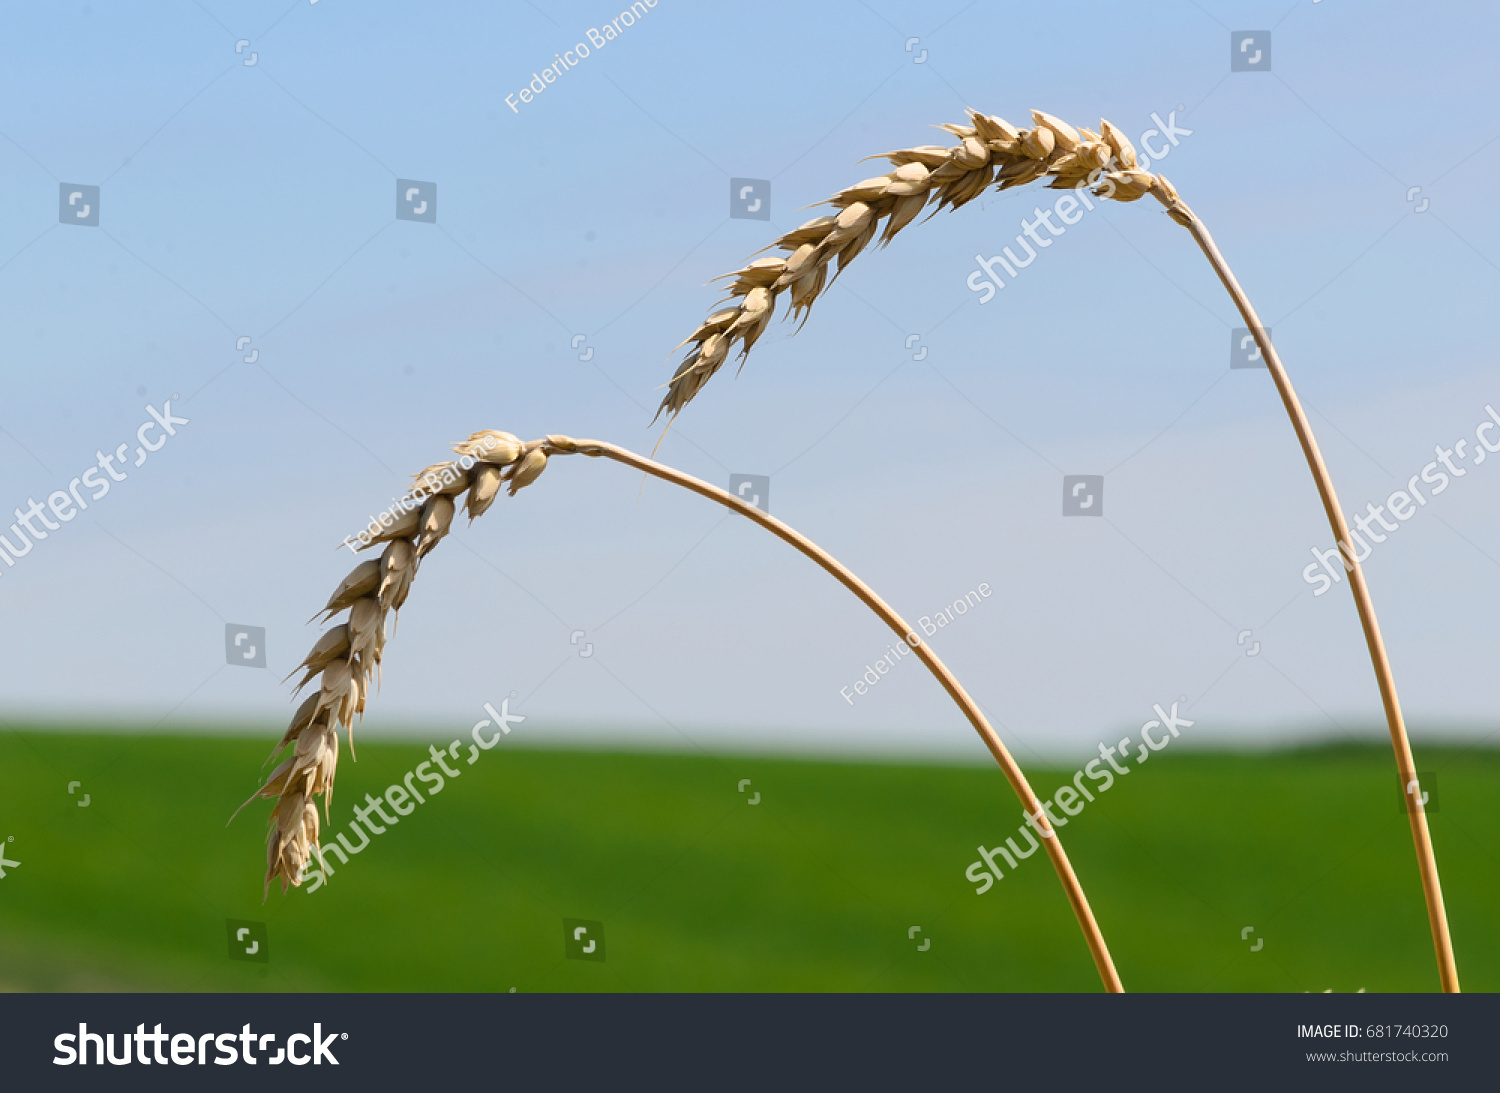 stock-photo-wheat-ears-leaning-under-the